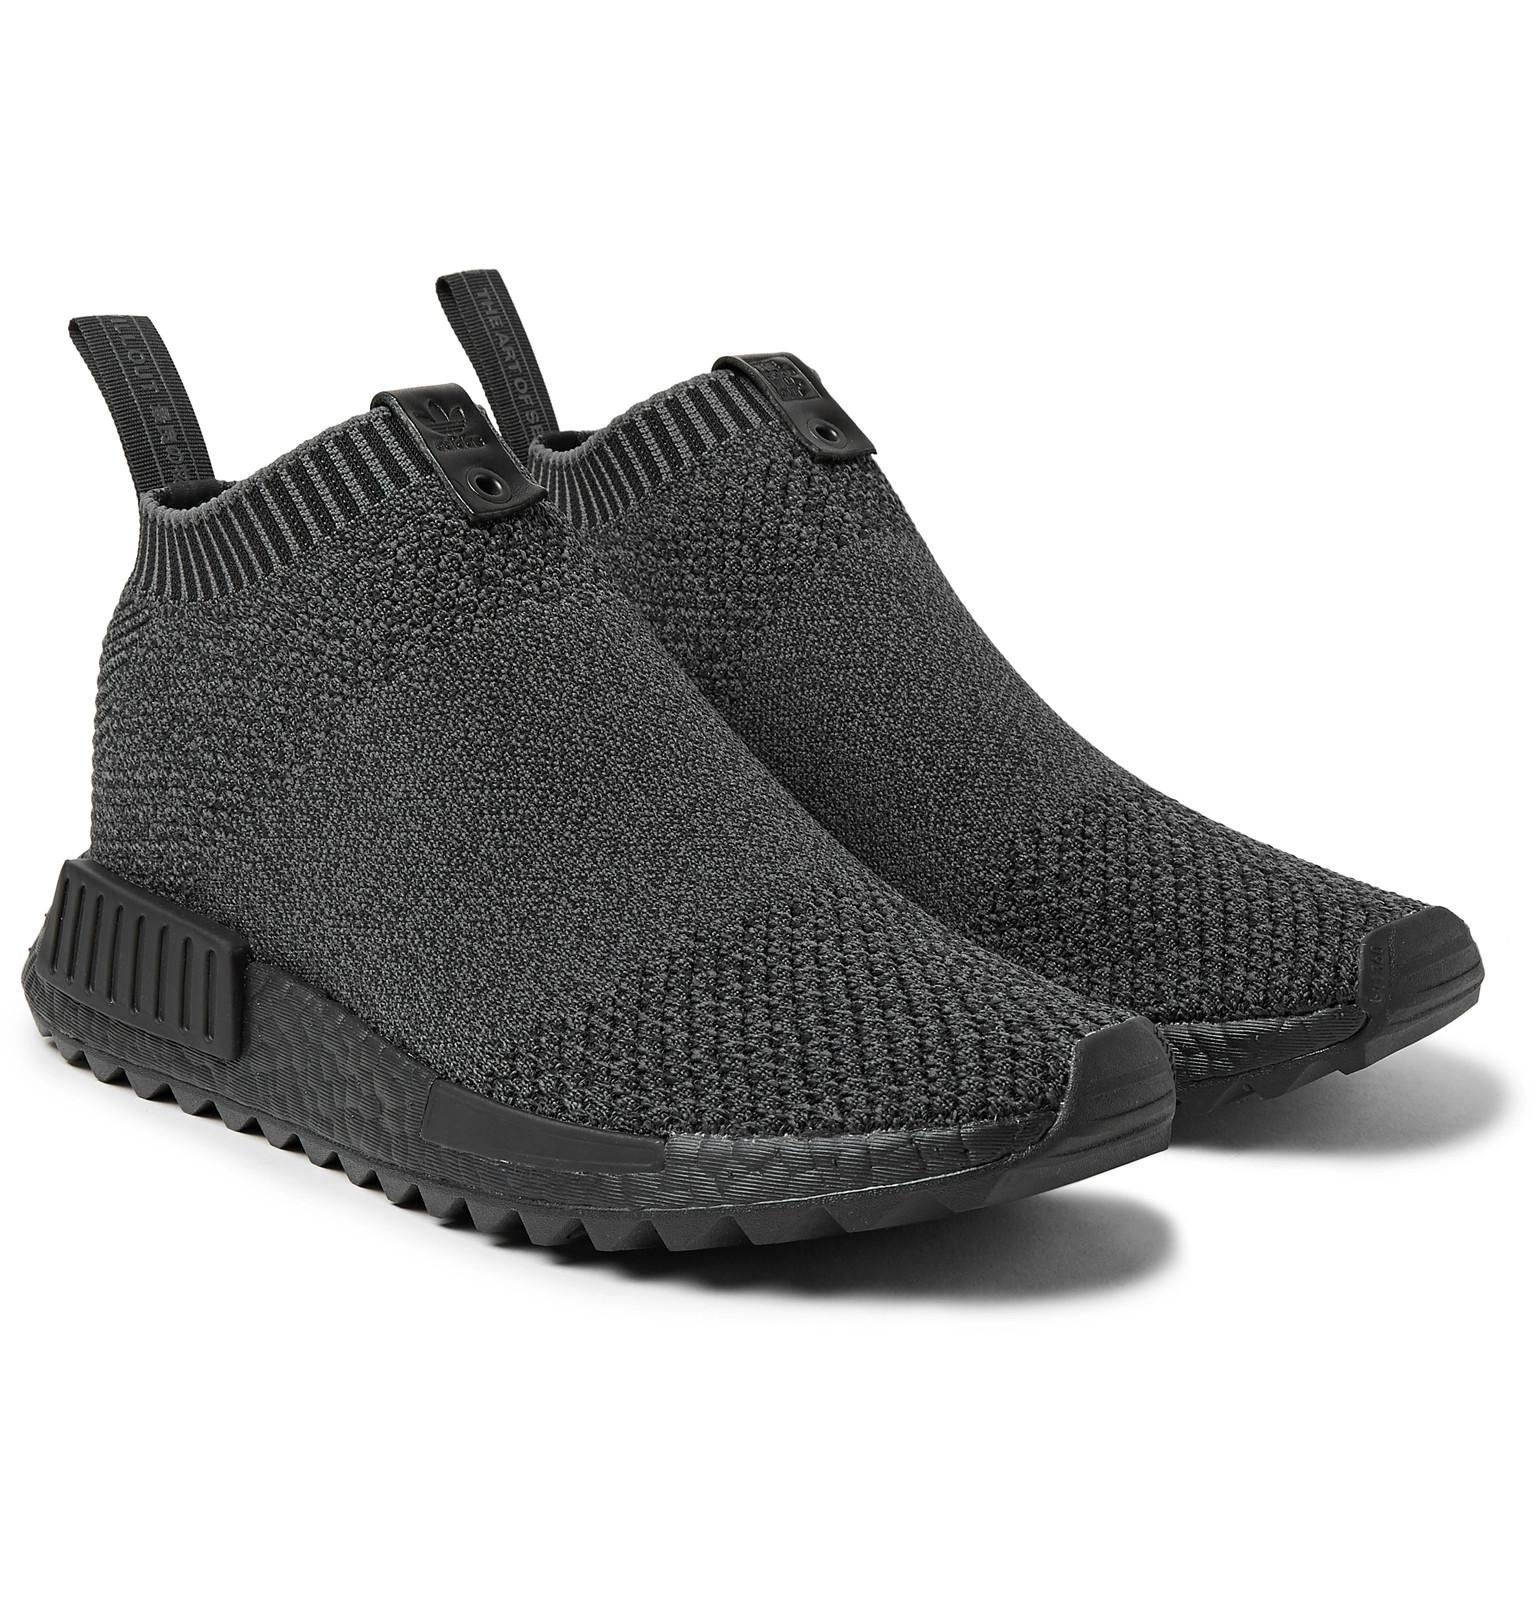 883e536116c2e Lyst - adidas Originals The Good Will Out Nmd Cs1 Primeknit Sneakers ...